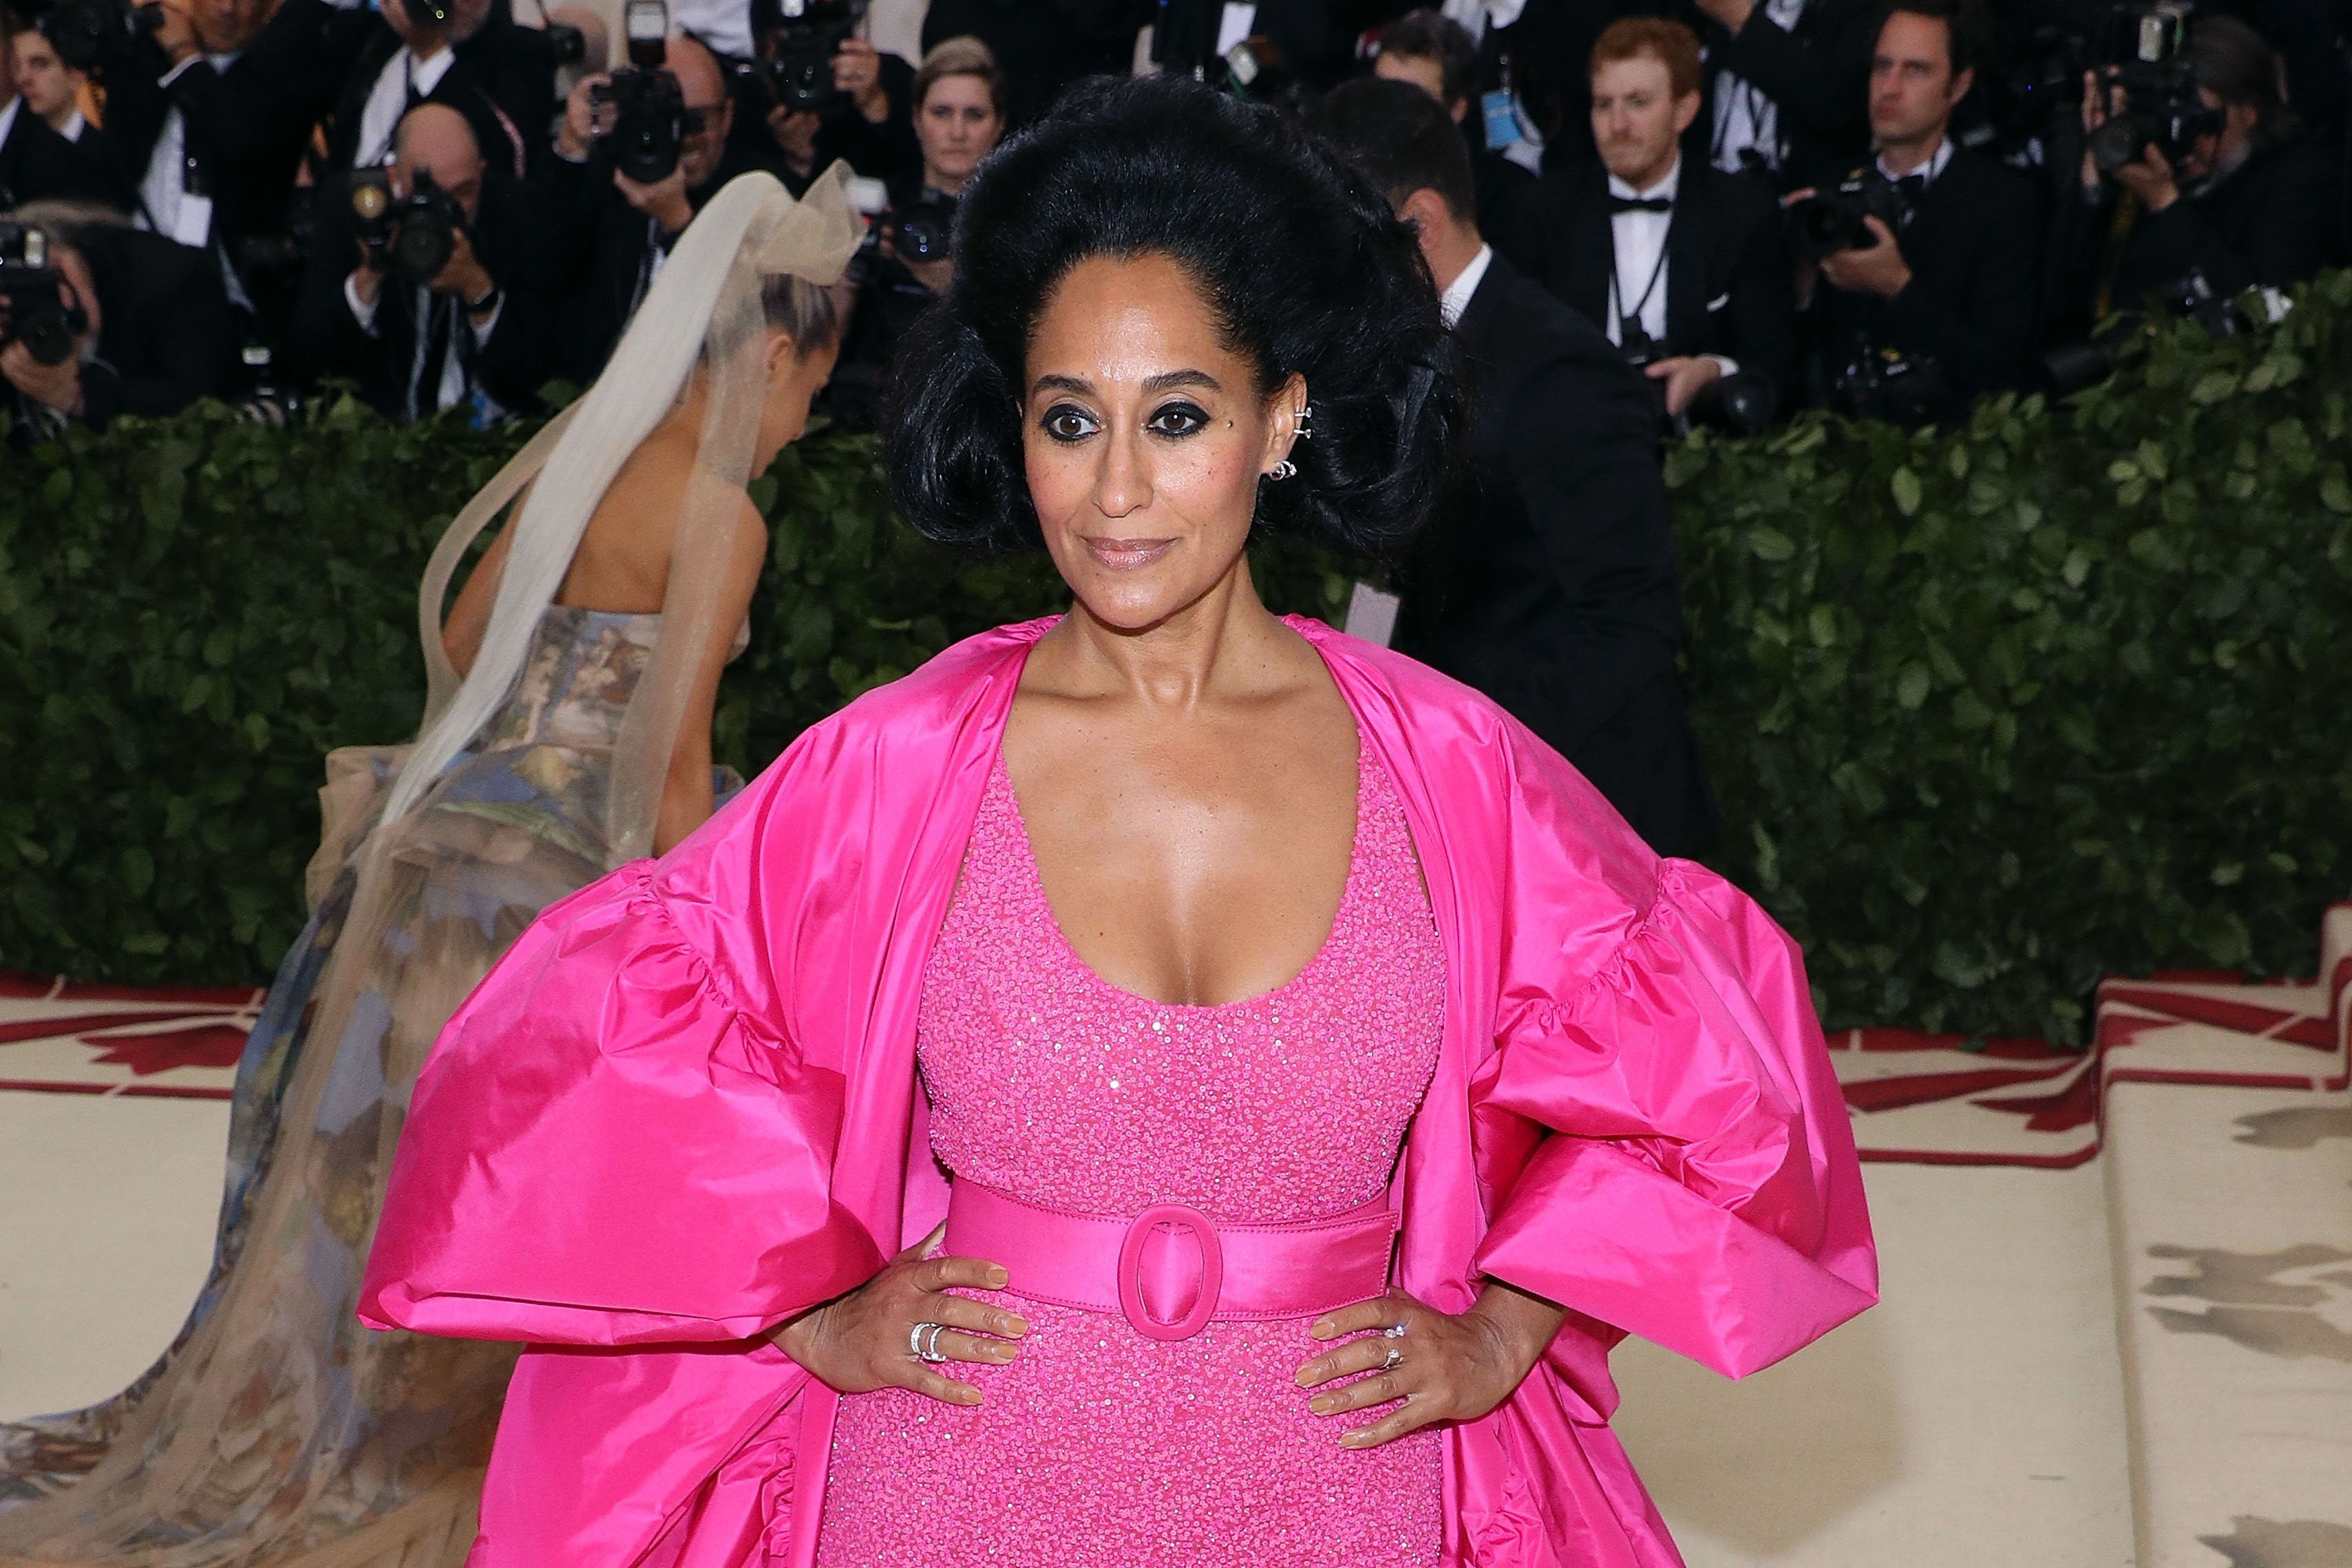 Tracee Ellis Ross poses at the 2018 Costume Institute Benefit at Metropolitan Museum of Art on May 7, 2018. | Photo: Getty Images